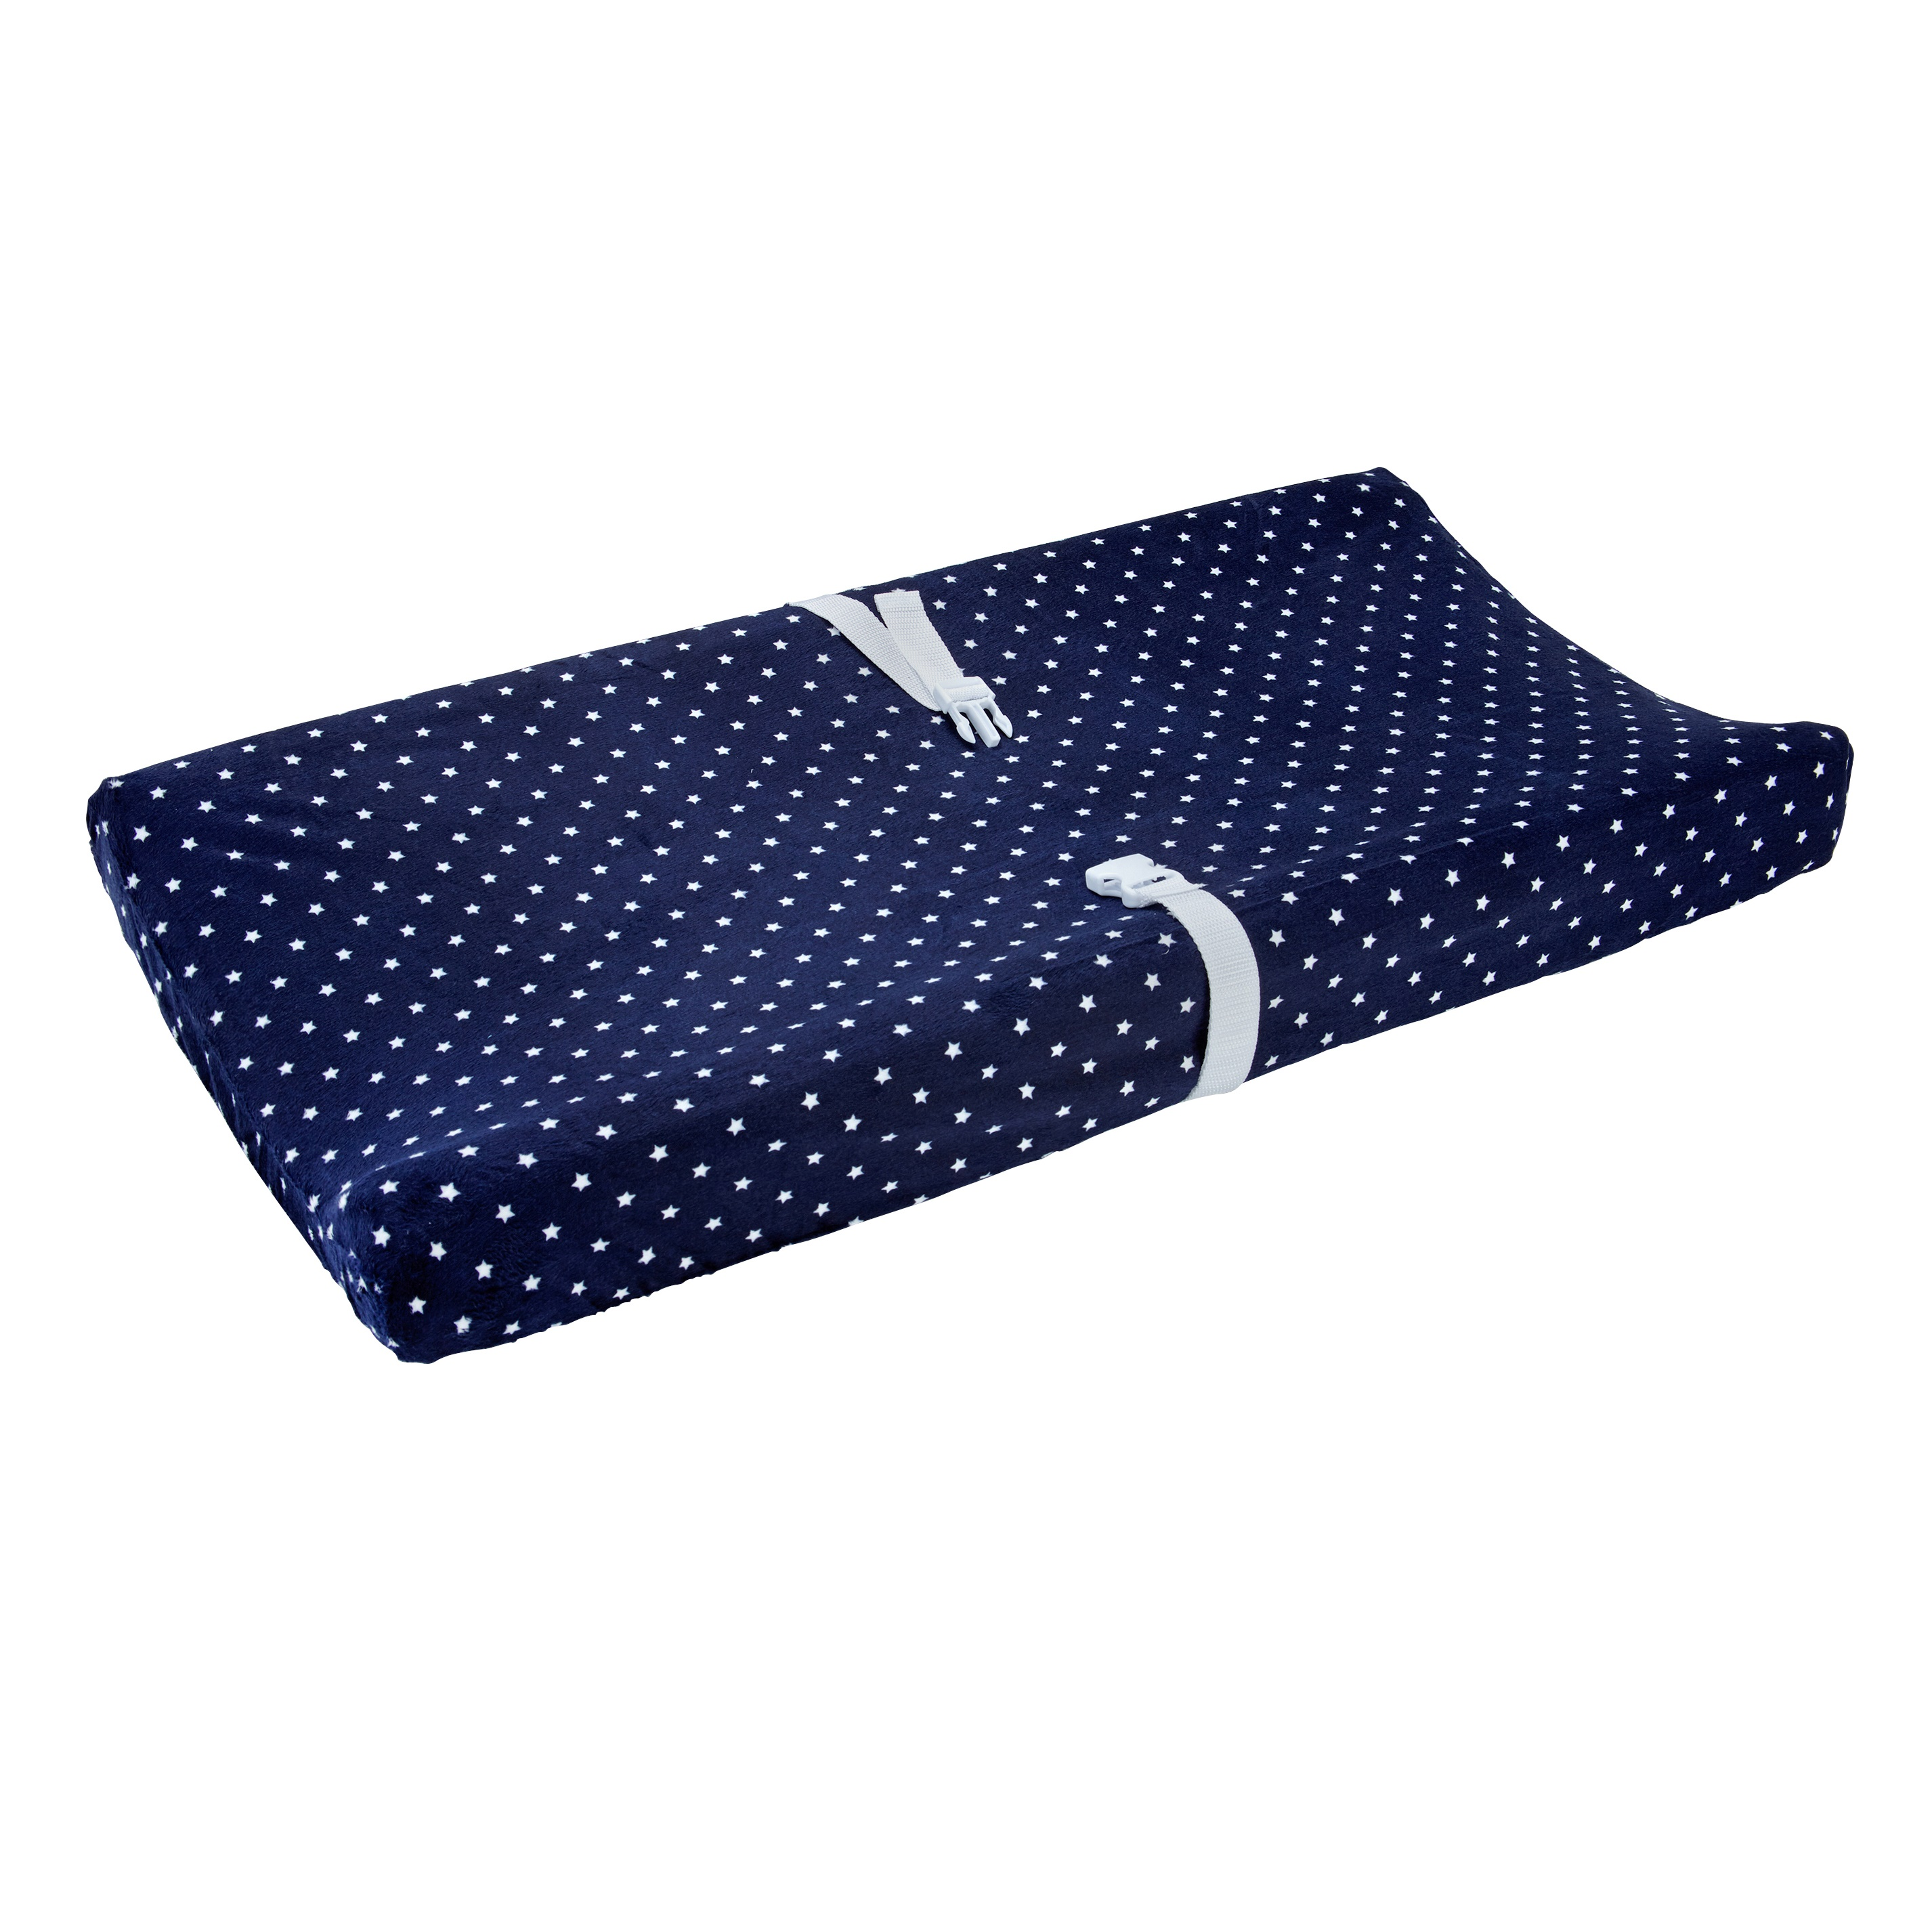 Carter's Changing Pad Cover Plush Velboa - Navy Stars